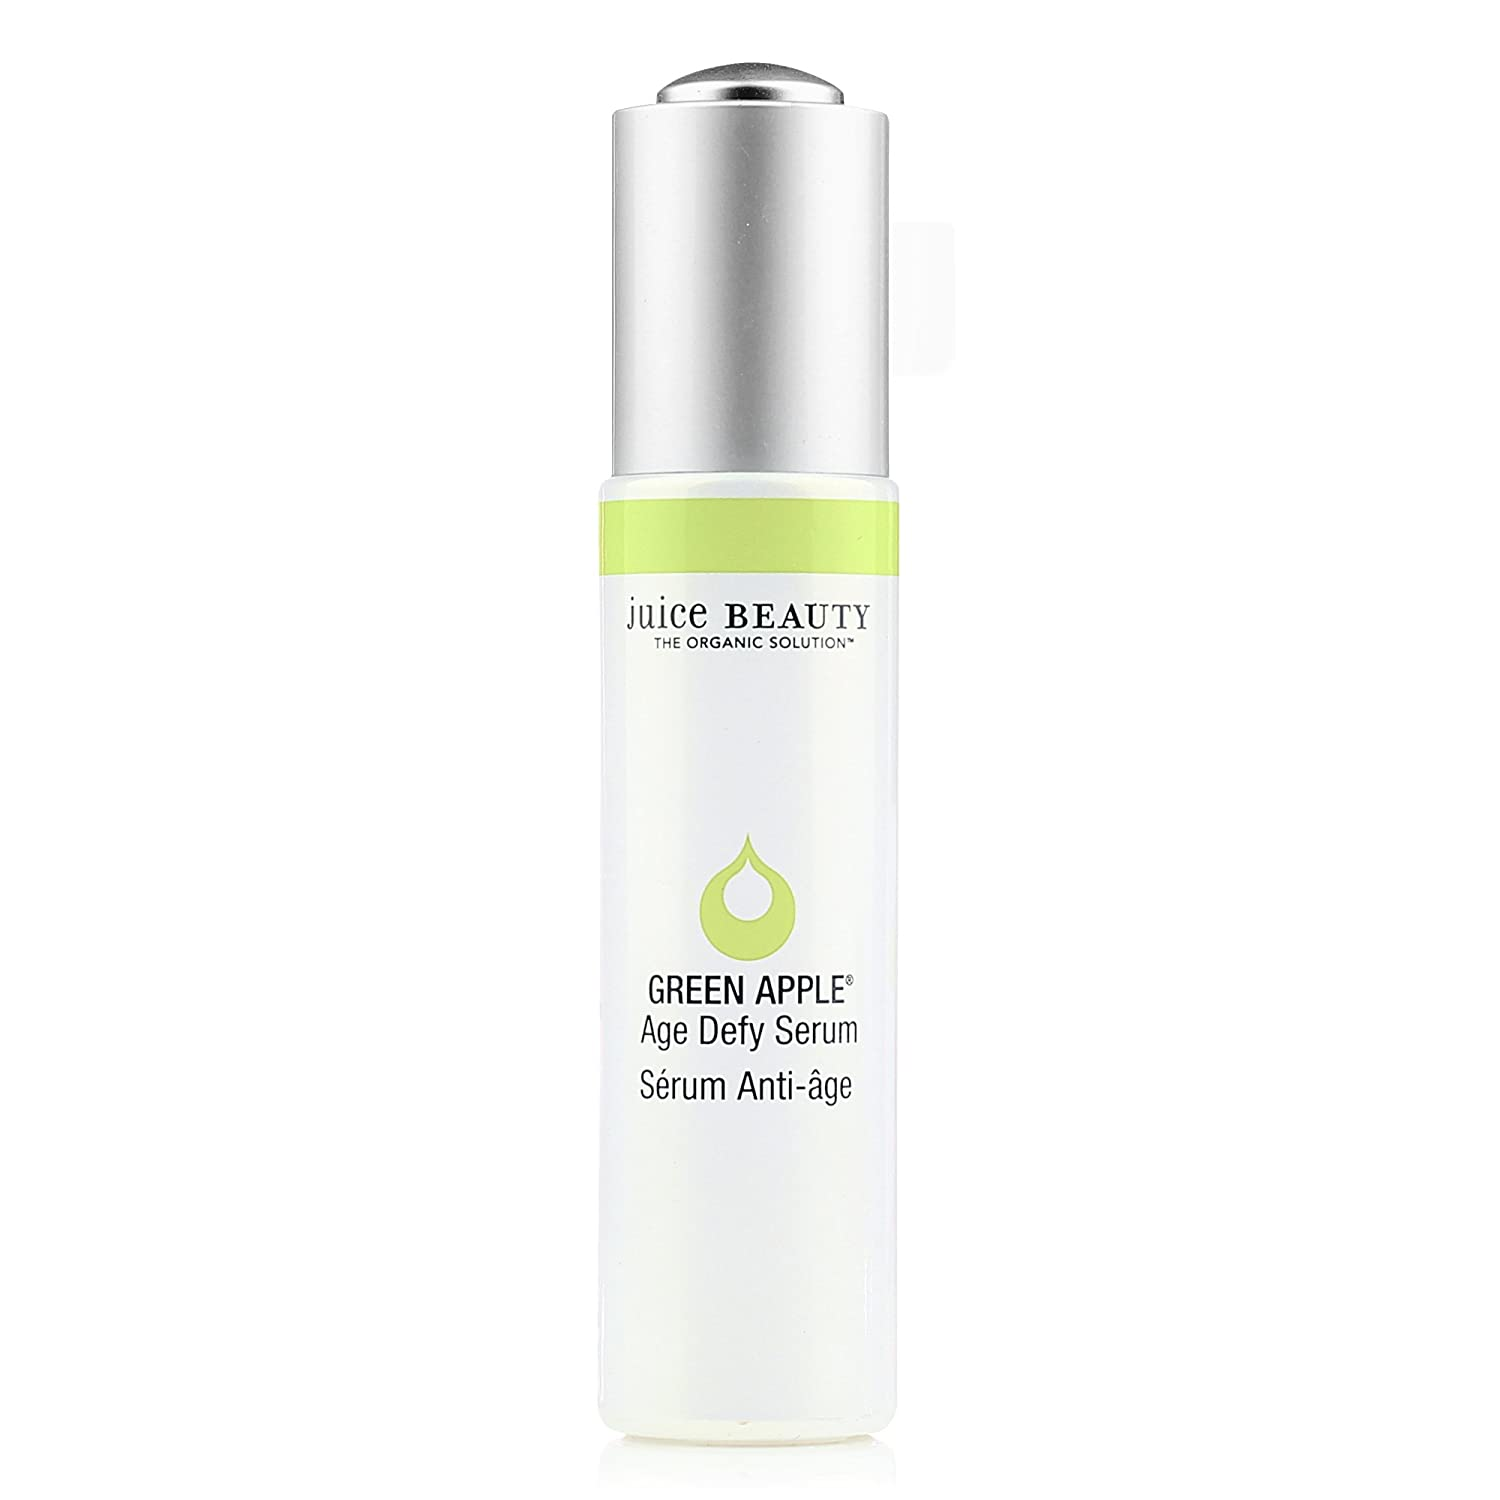 Juice Beauty Green Apple Age Defy Serum, 1 Fl Oz